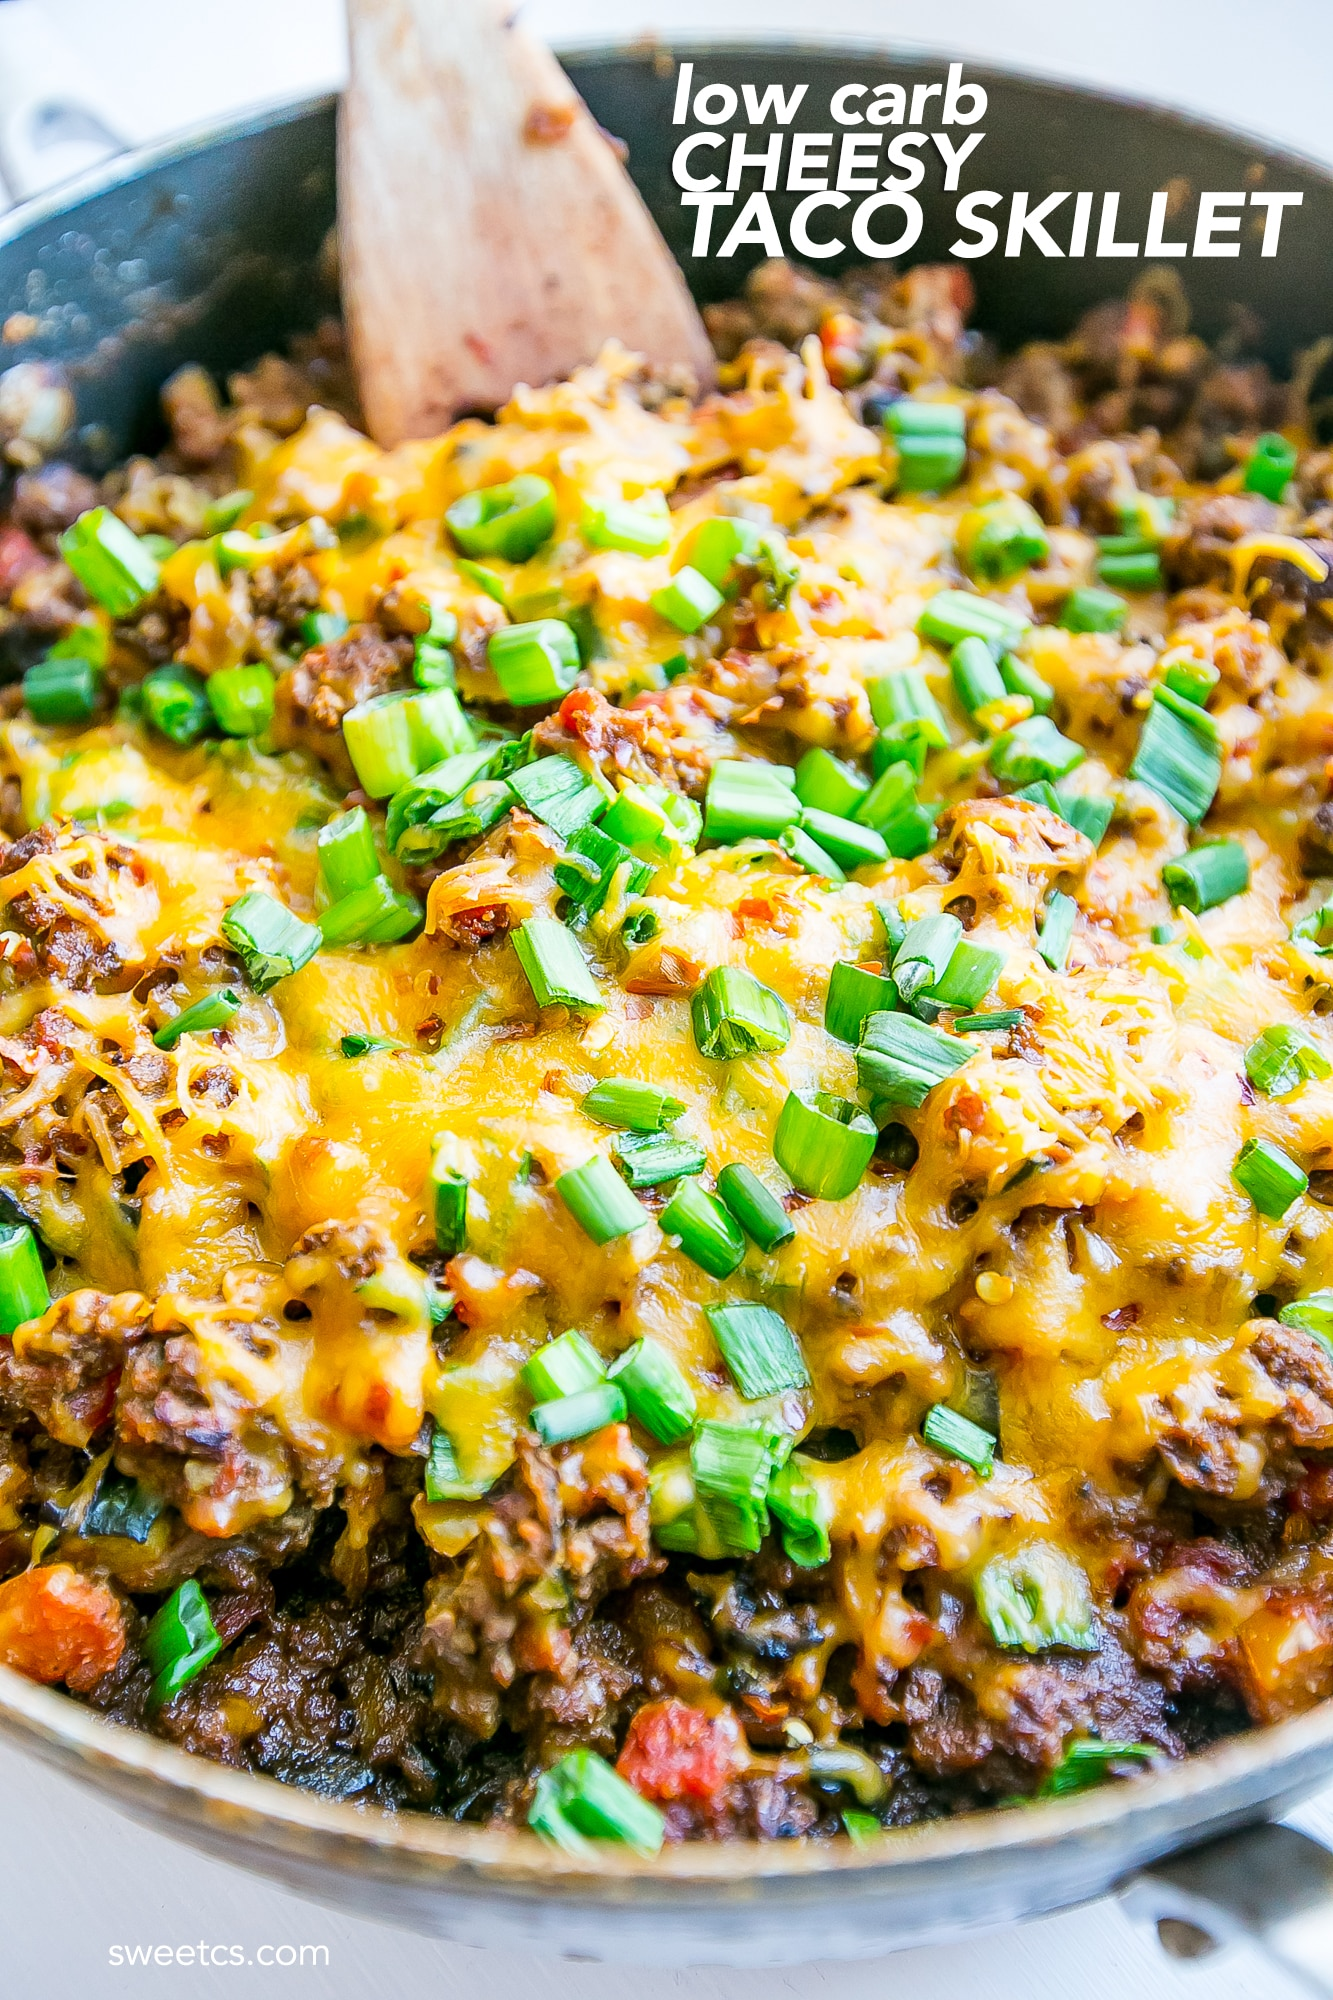 low carb cheesy taco skillet- under 350 calories and 13 carbs per serving!